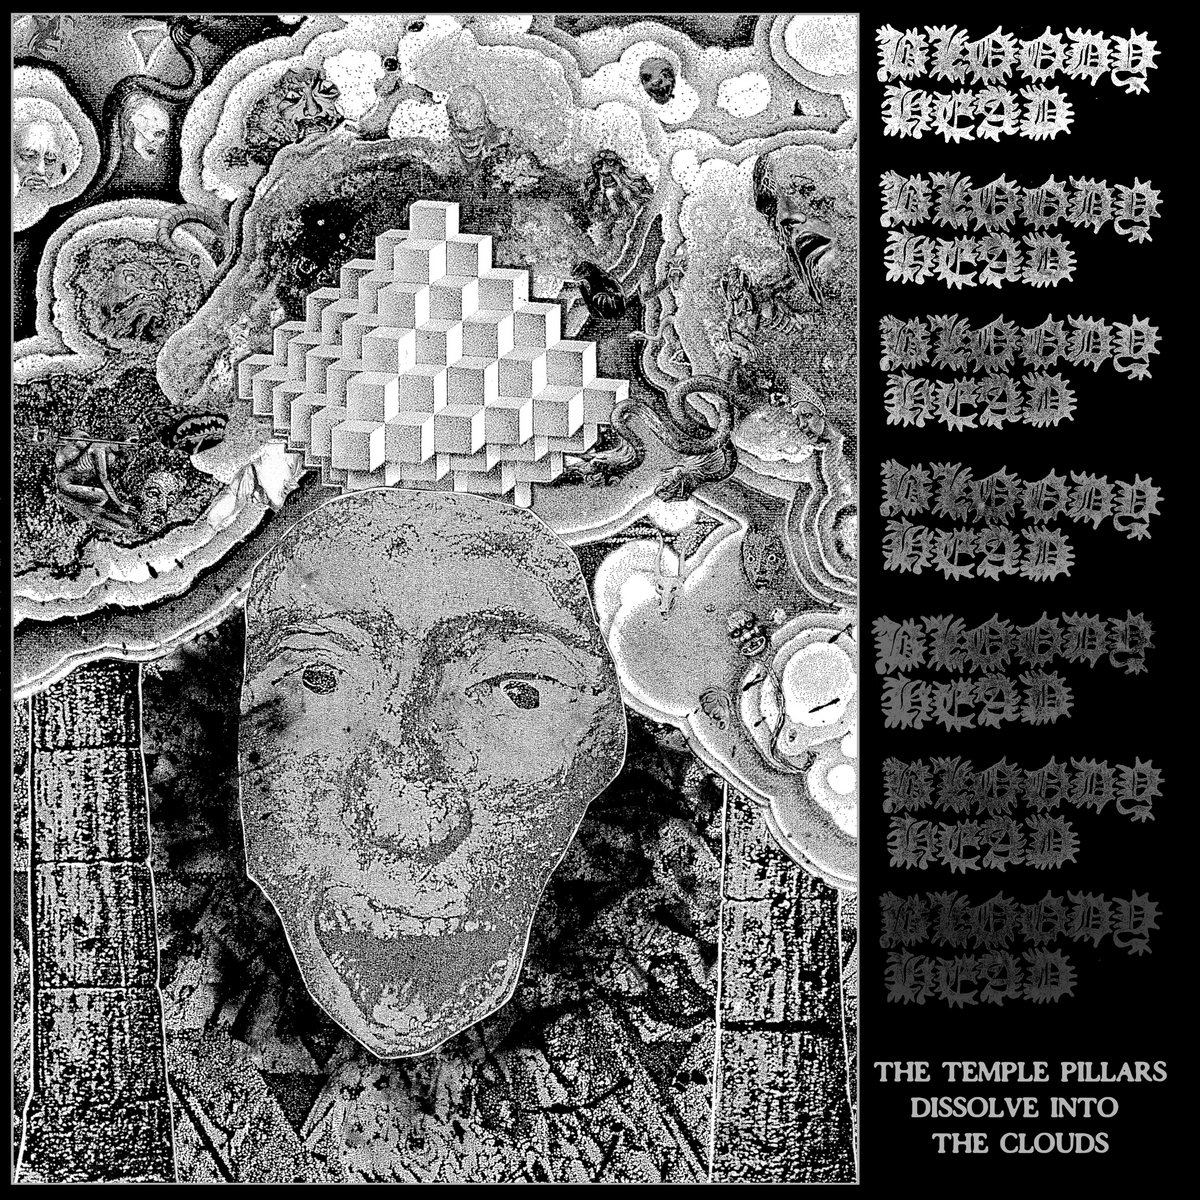 Bloody Head - The Temple Pillars Dissolve Into The Clouds